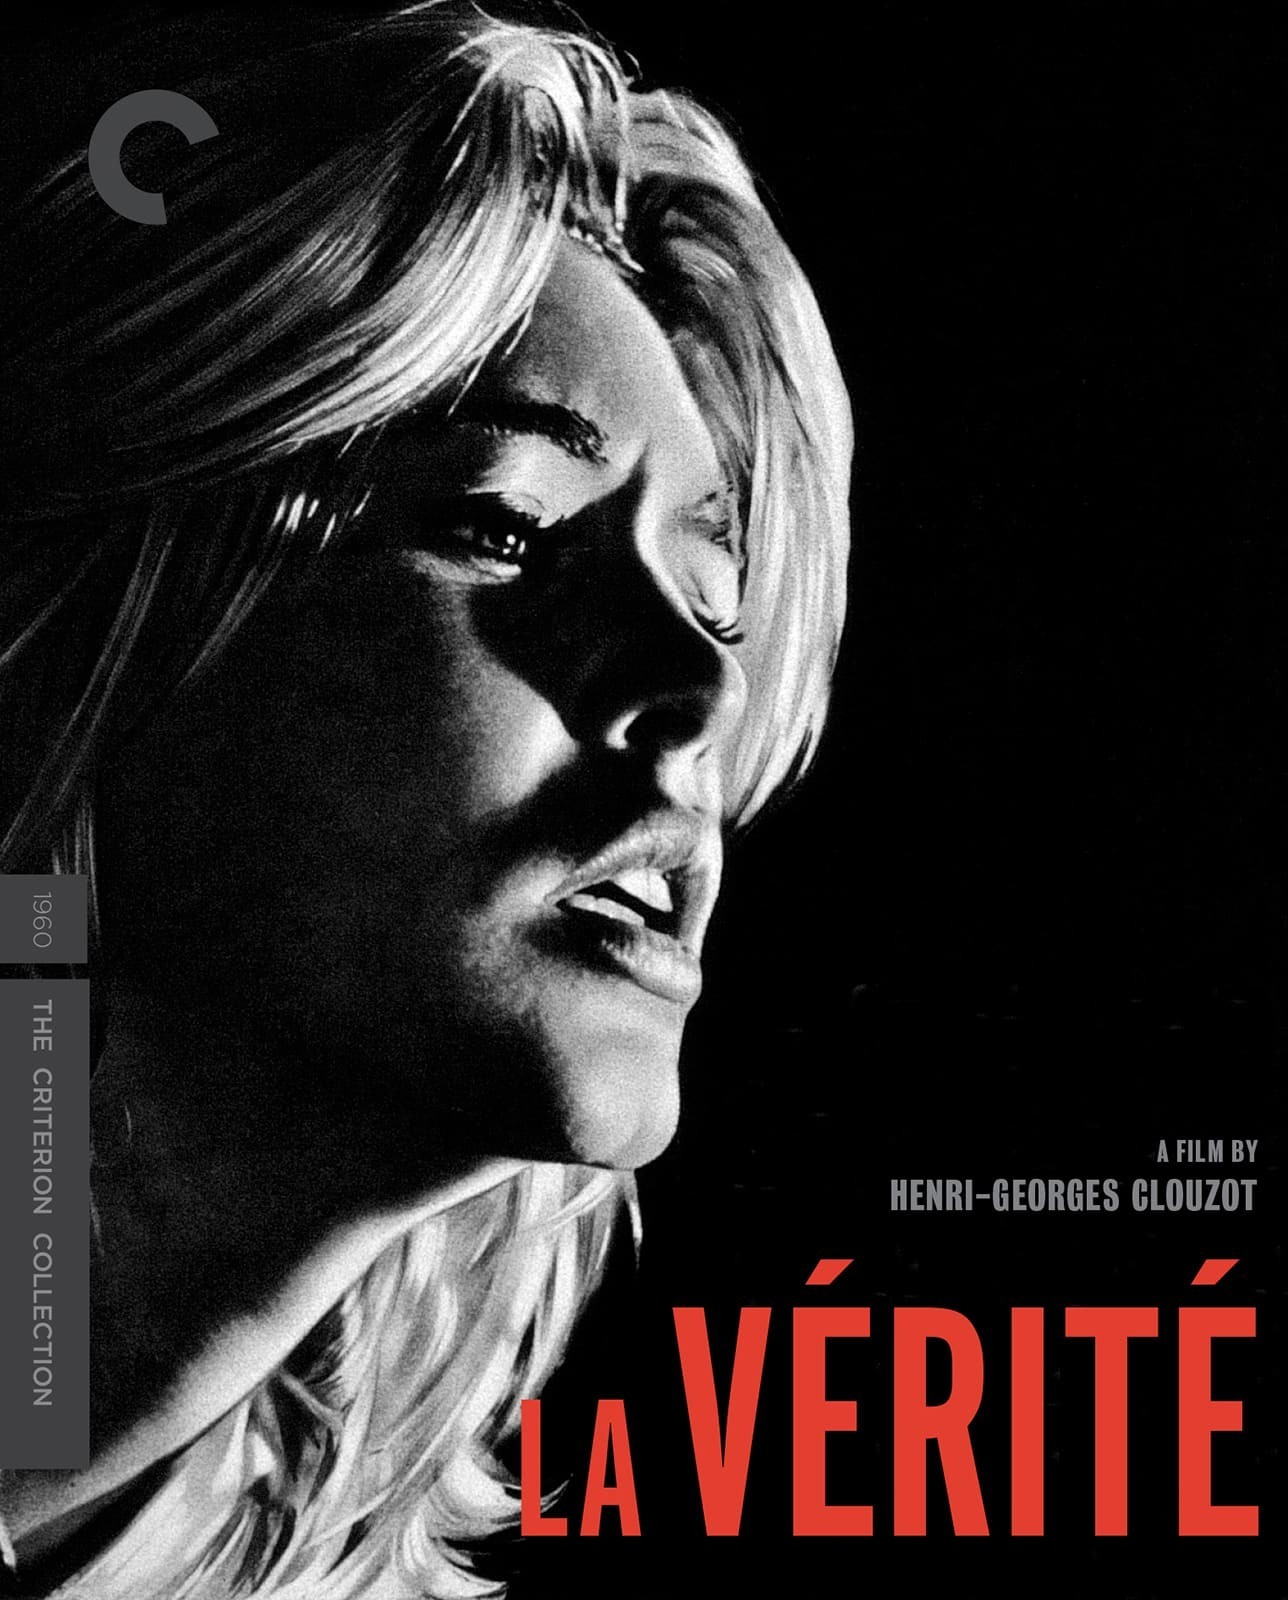 La vérité (The Criterion Collection)(Blu-ray)(Region A)(Pre-order / Feb 12)